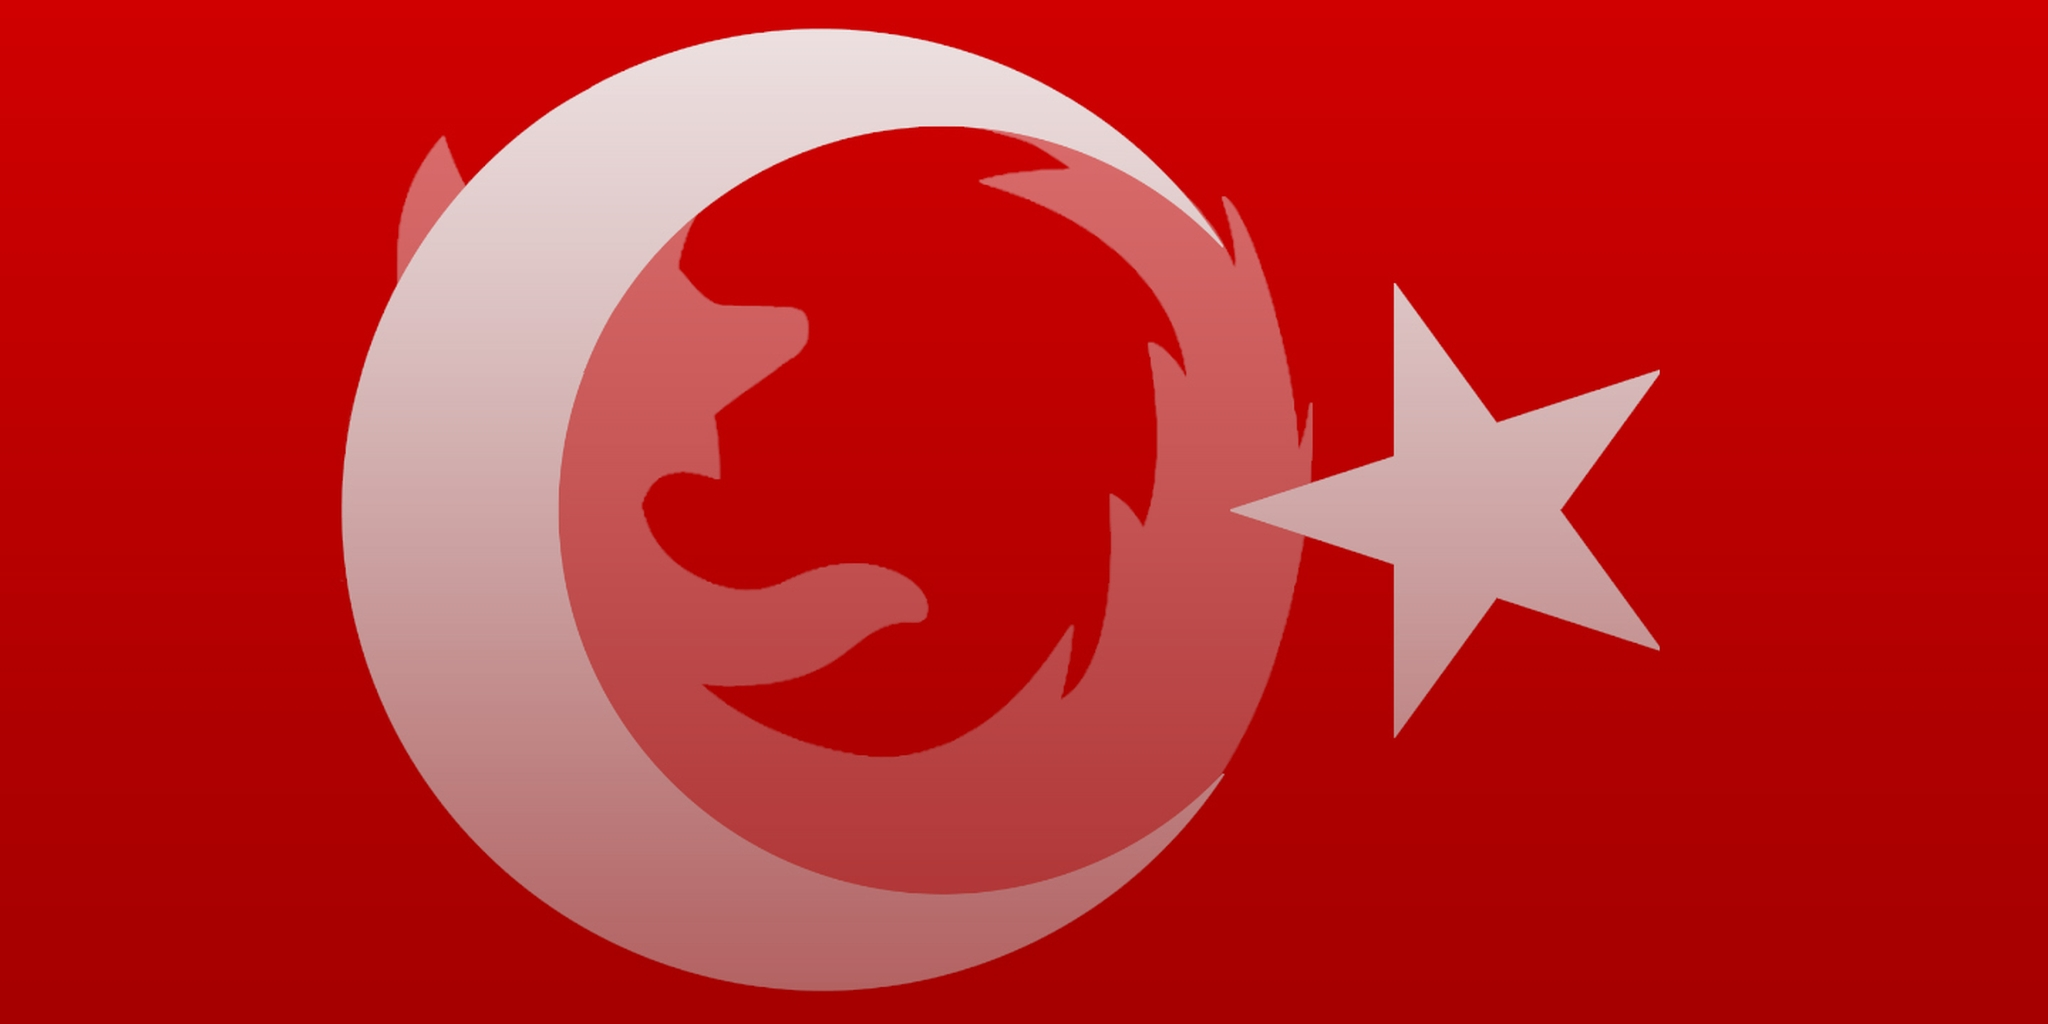 abstract art of the turkish flag with the firefox logo